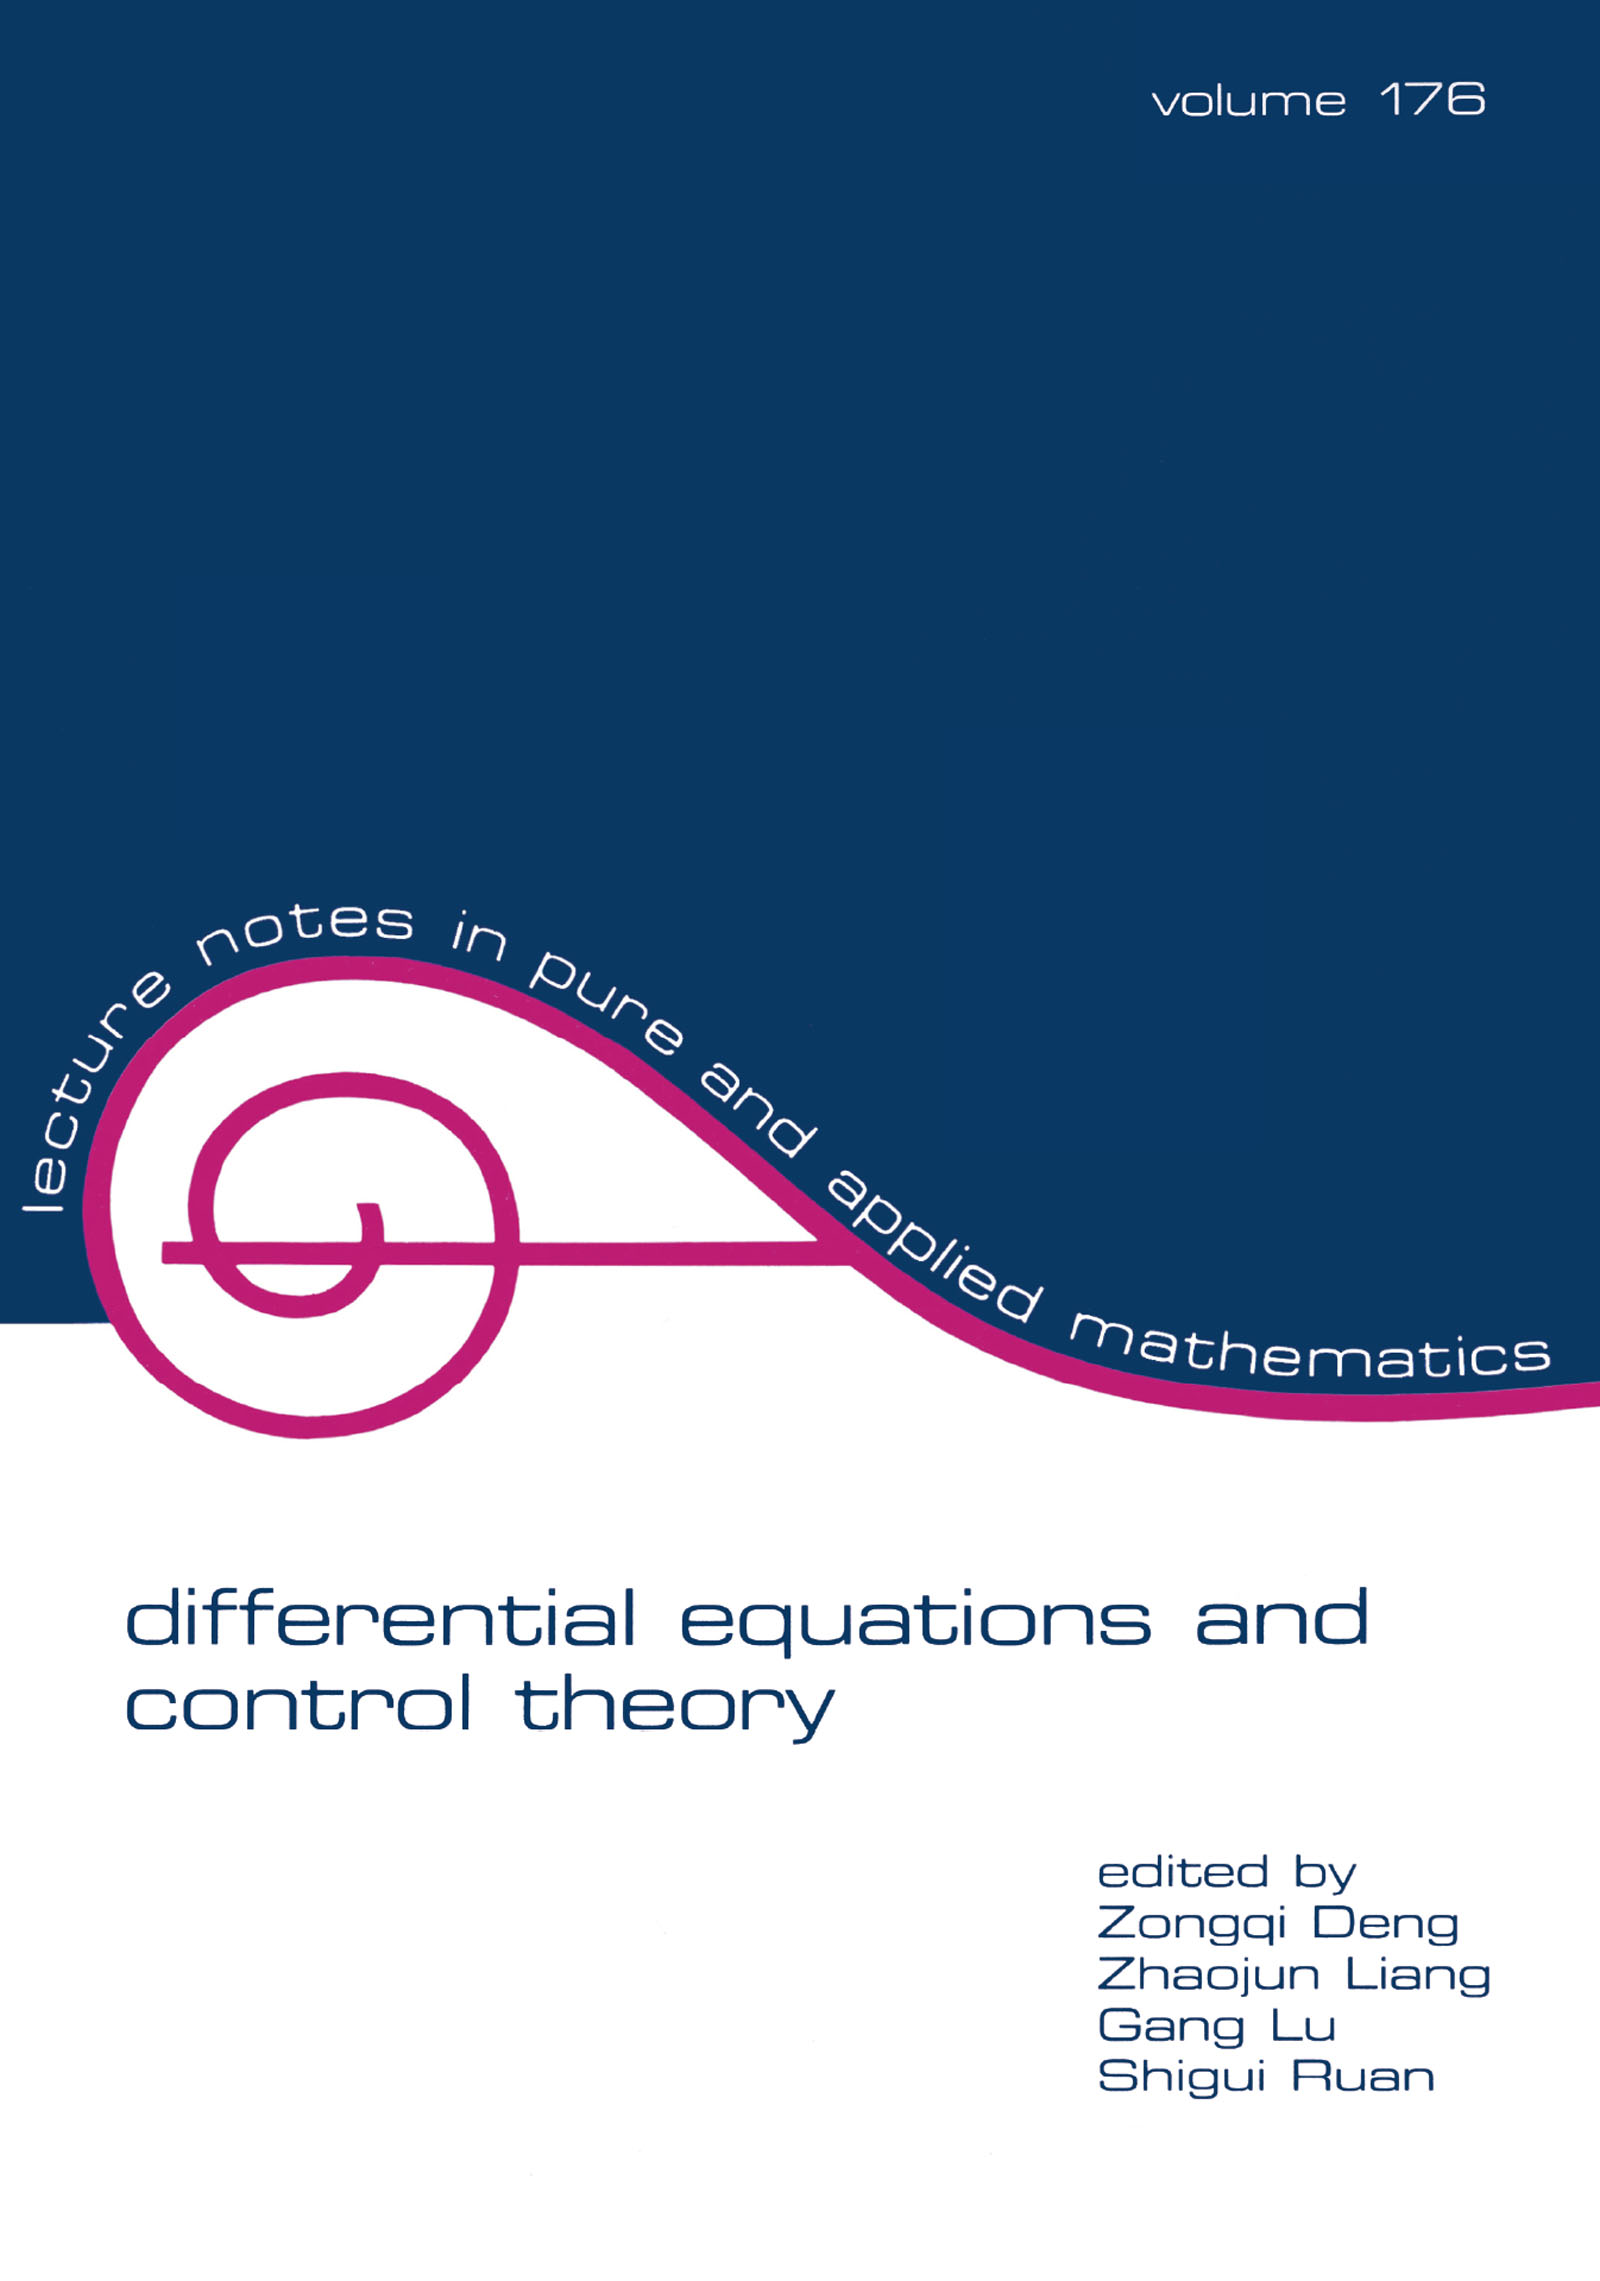 Melnikov Functions and Homoclinic Orbits for Functional Differential Equations